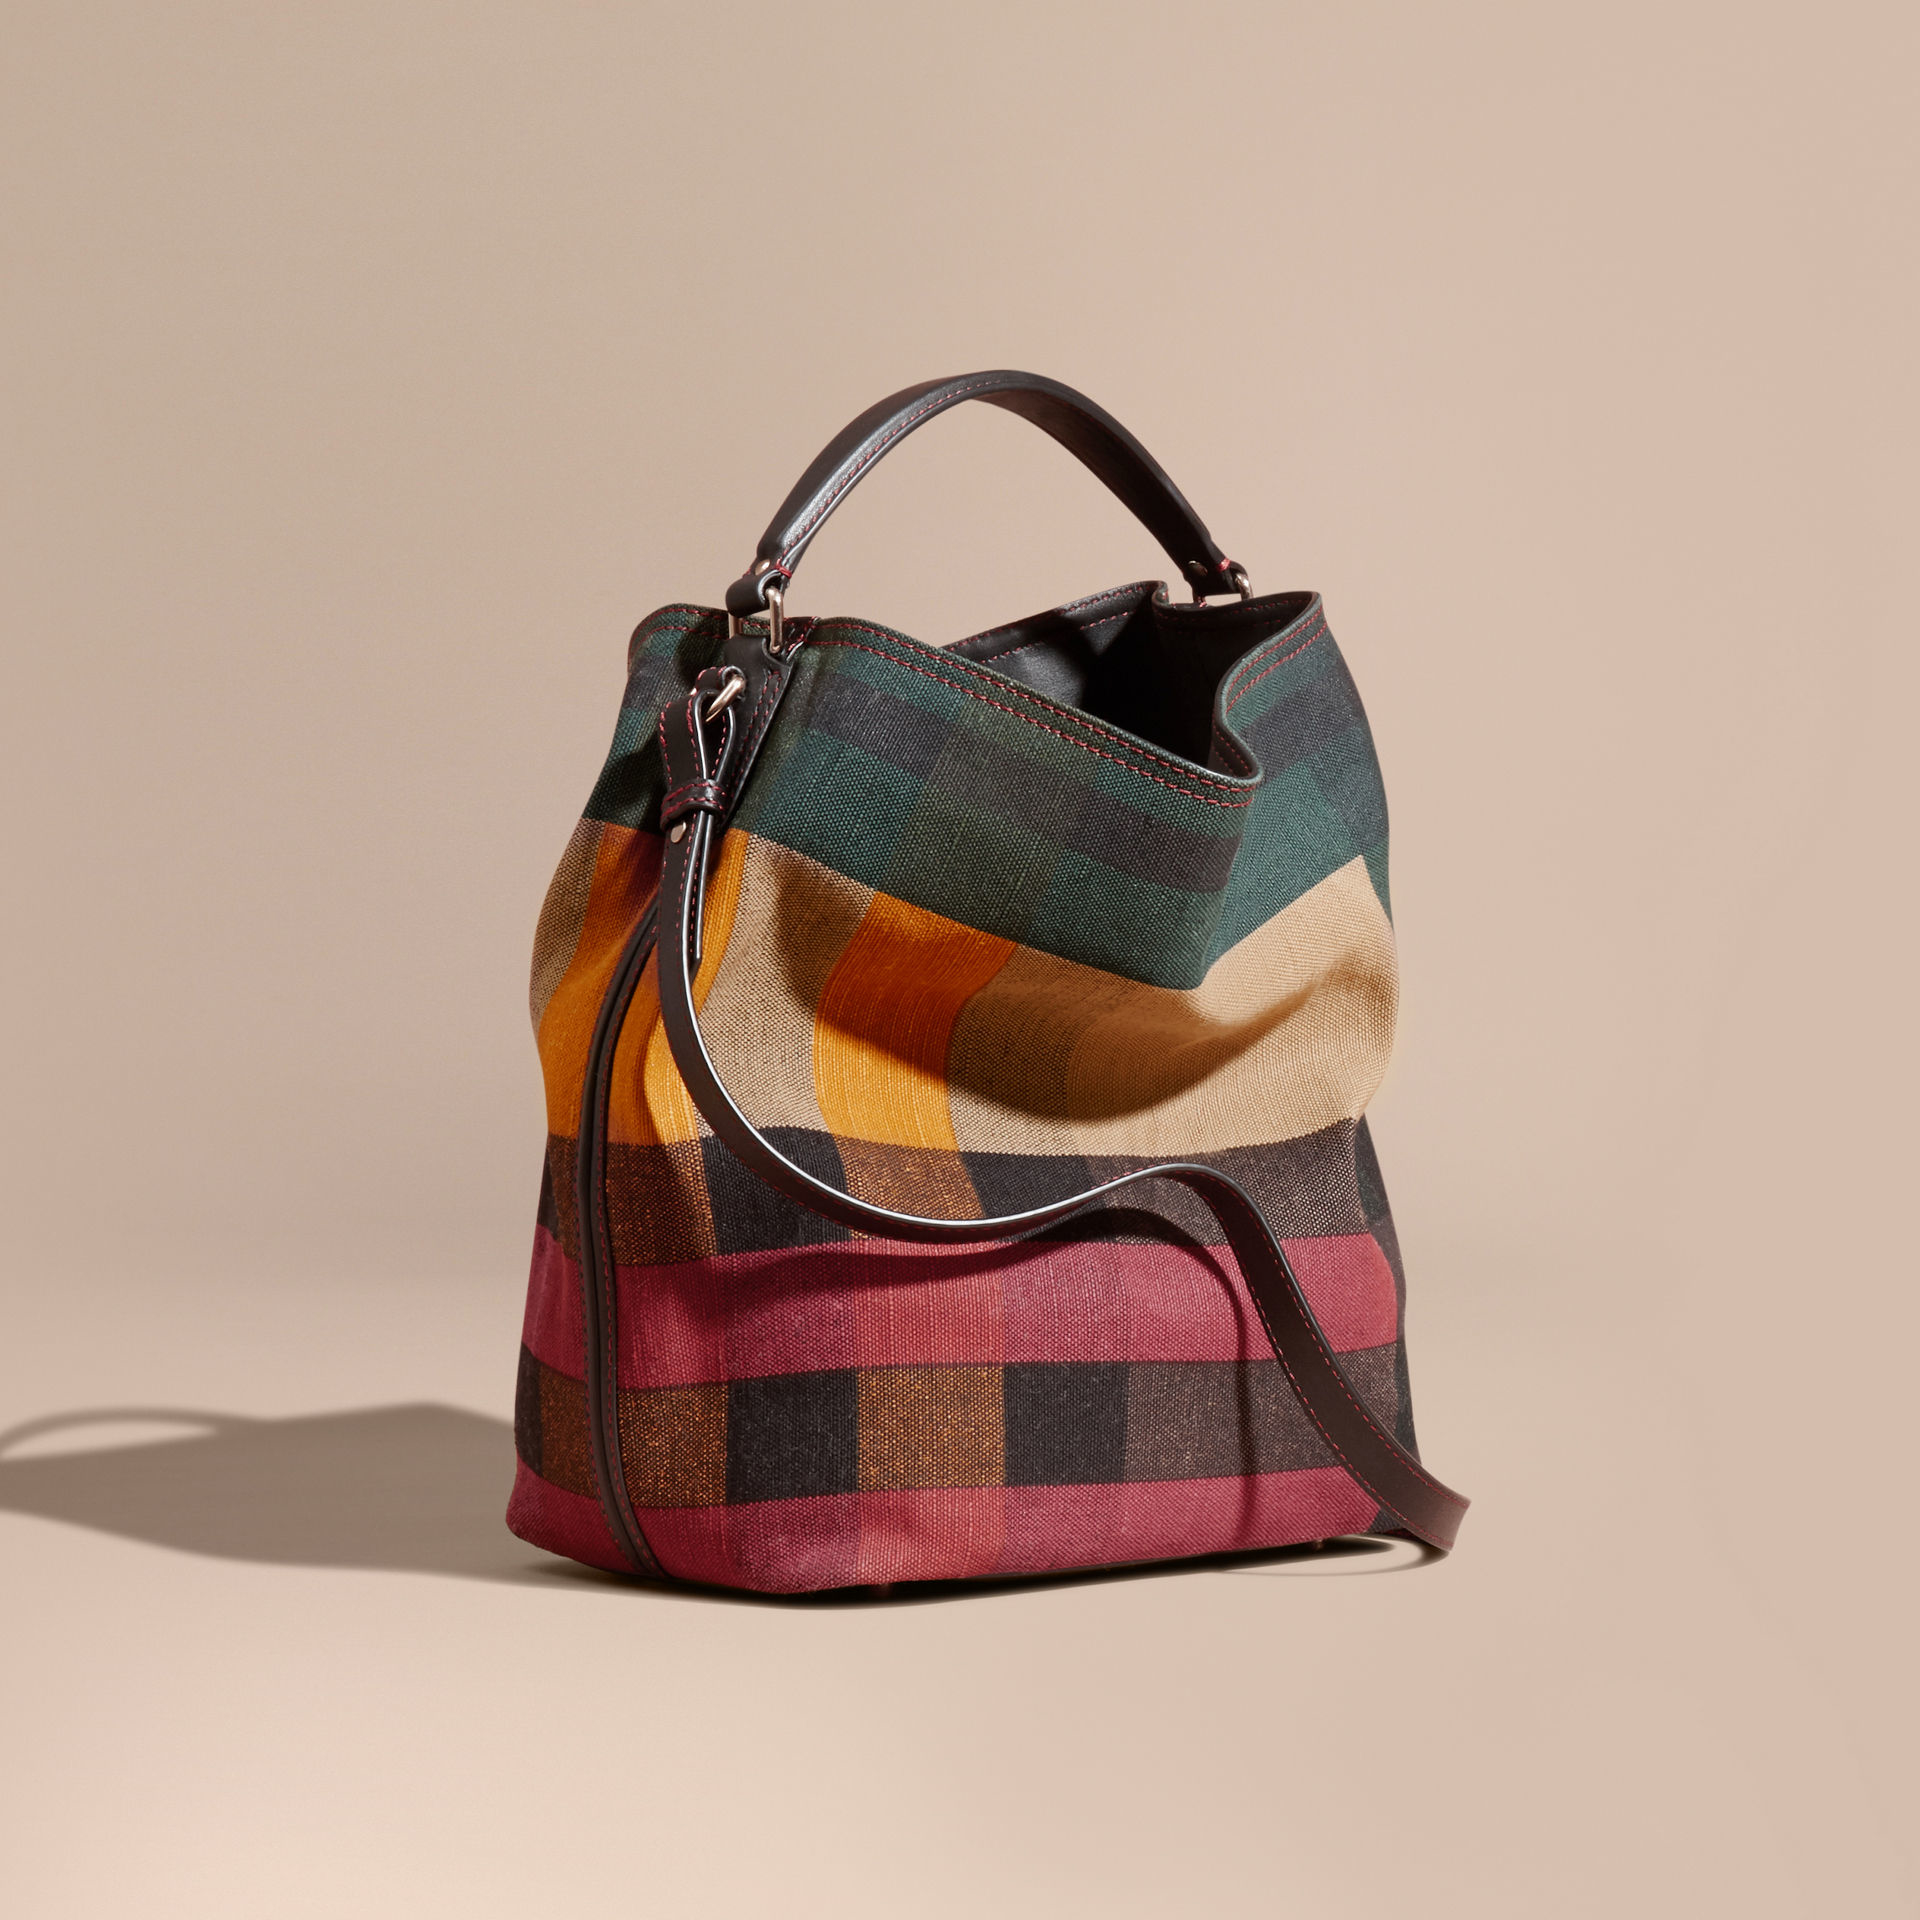 Lyst - Burberry The Medium Ashby In Printed Canvas Check And Leather 892a1a99d3121